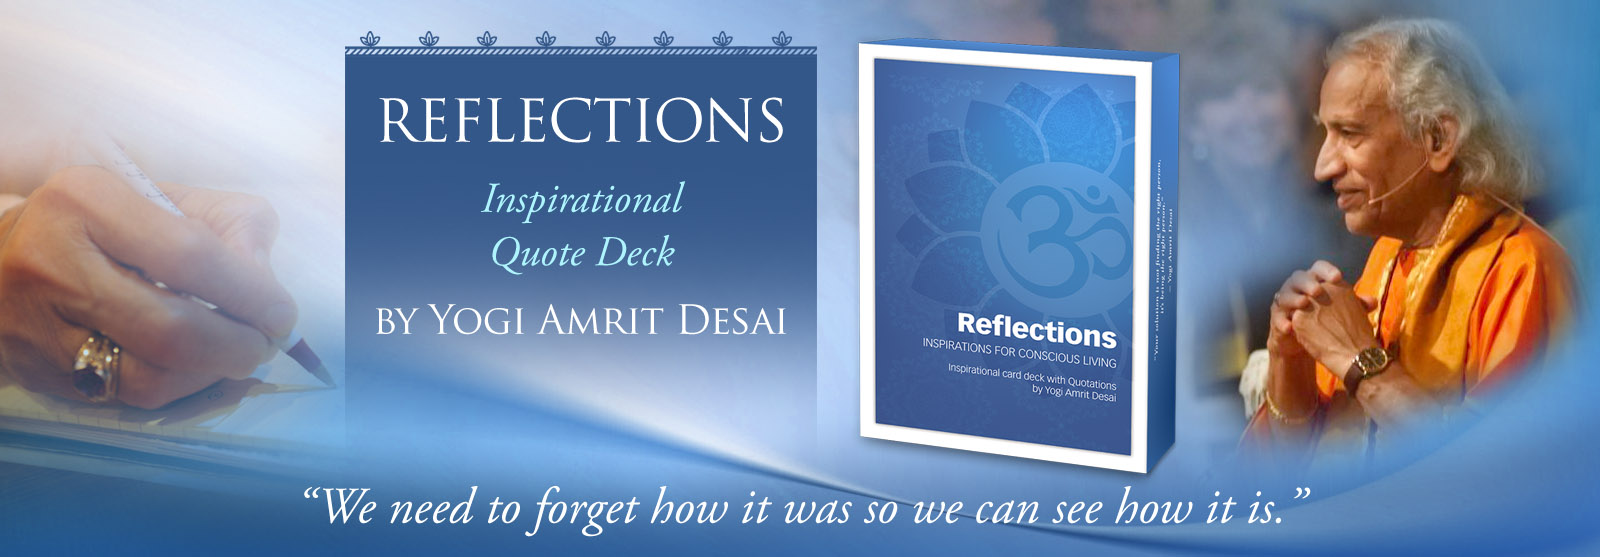 Reflection Cards